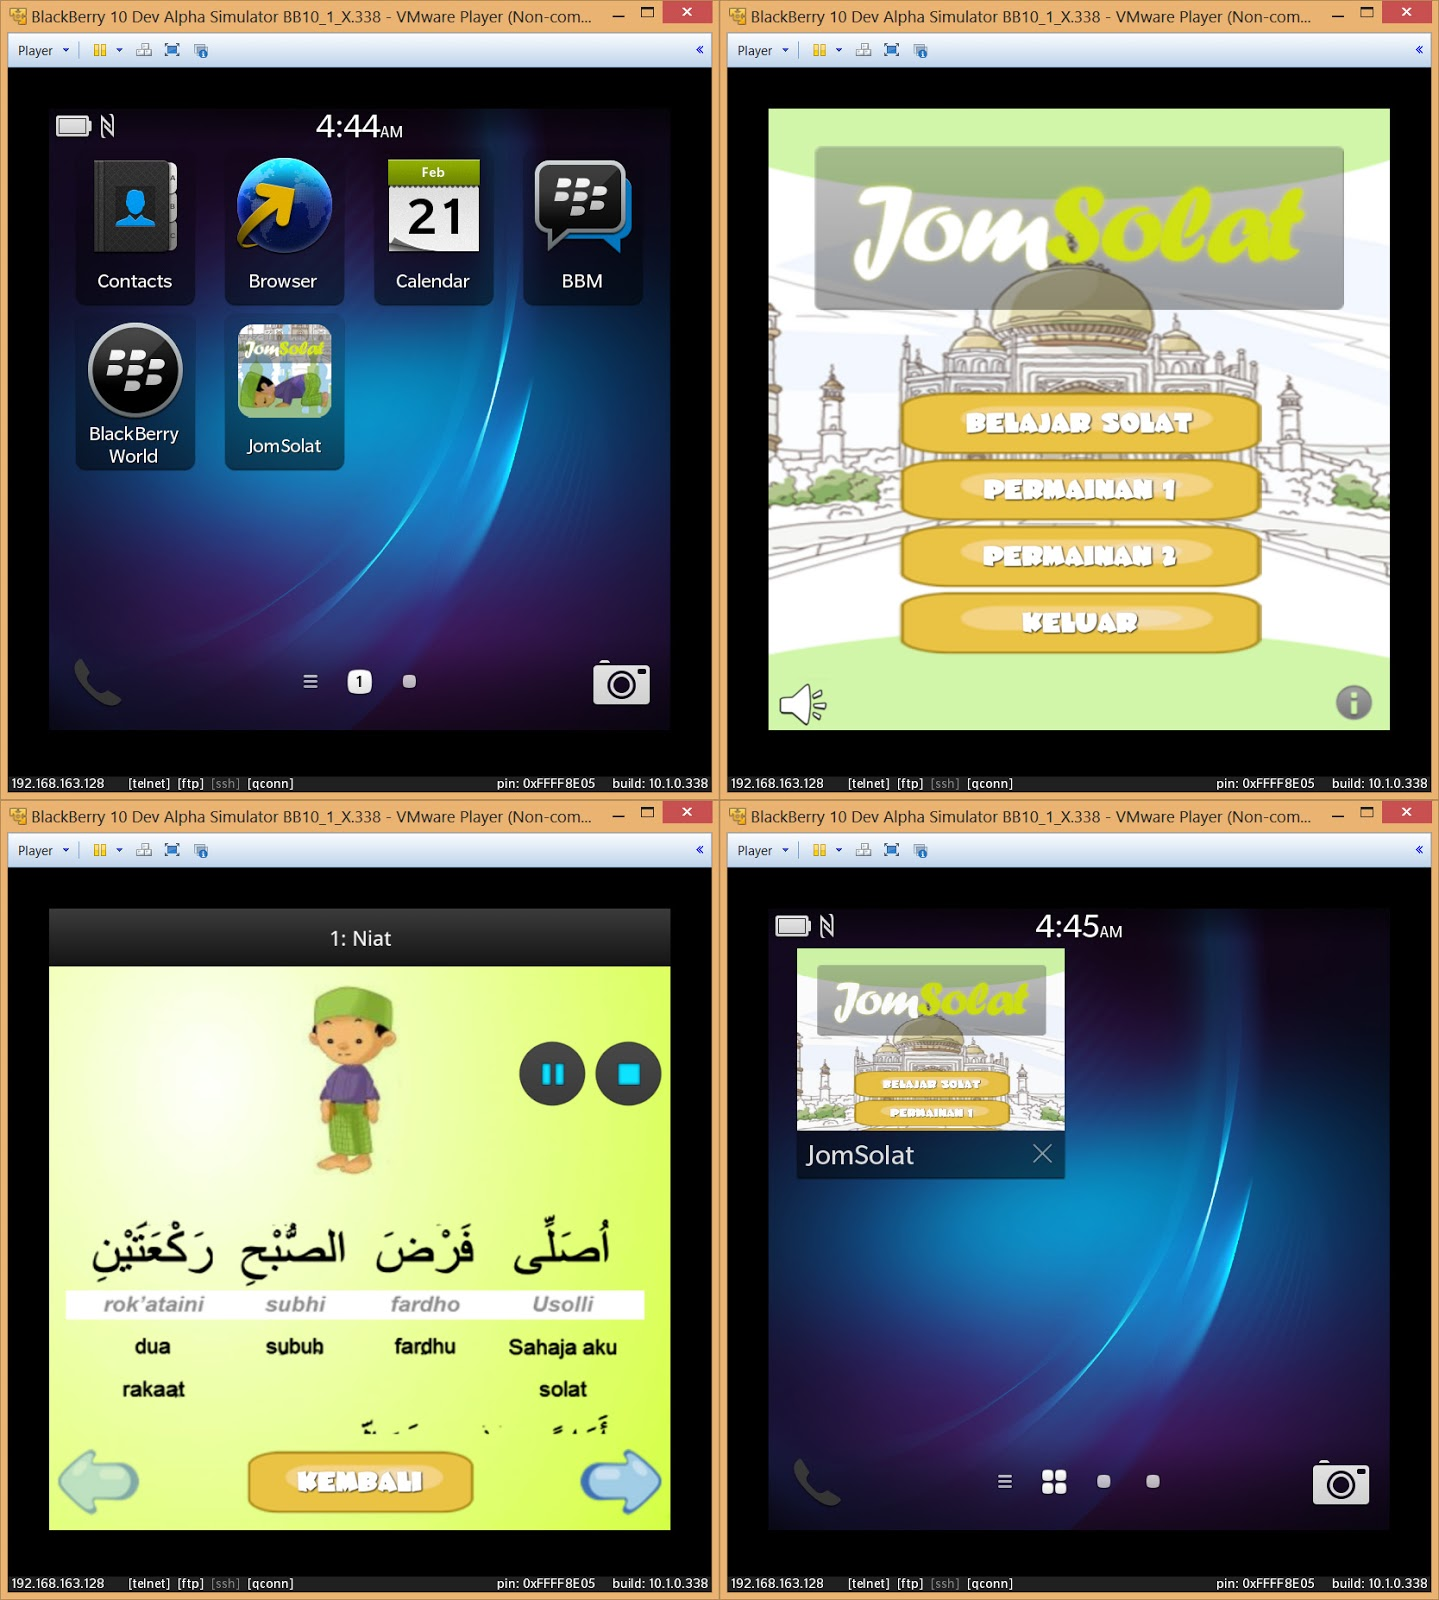 JomSolat BlackBerry 10